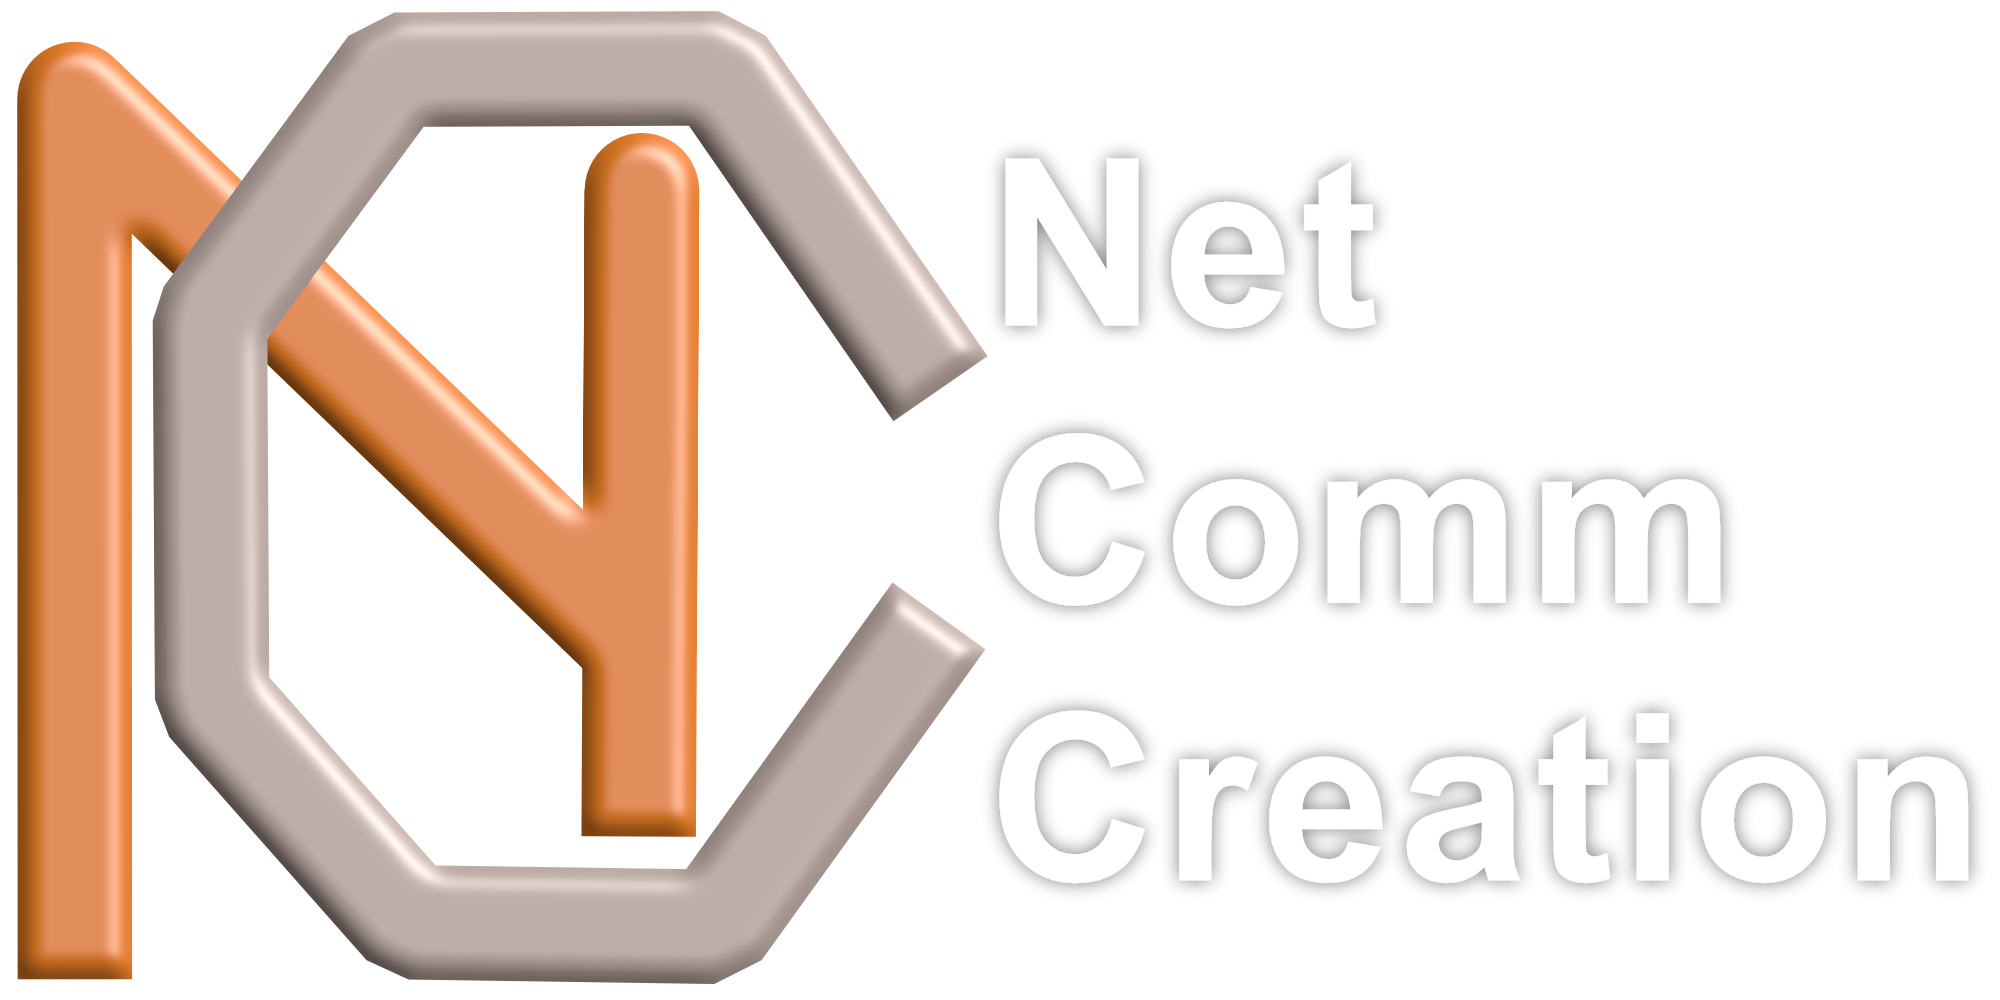 NetComm-Creation